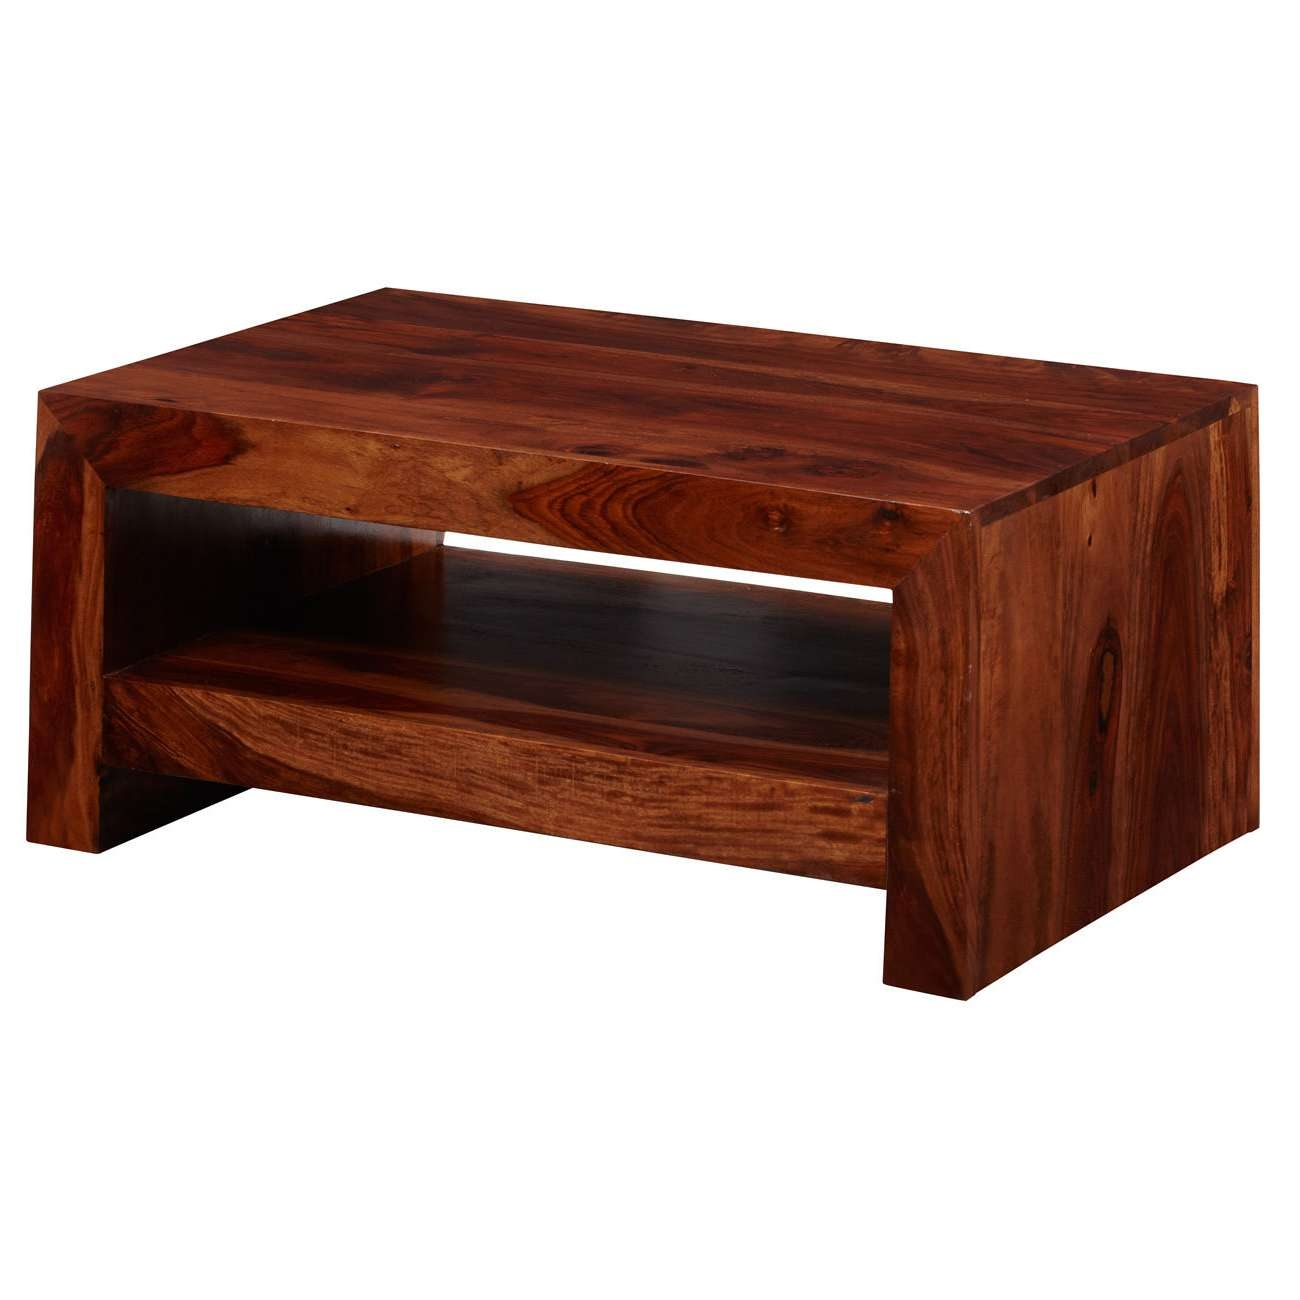 Splendid On Lift Coffee Table Small Coffeetables Solid Wood Lift Pertaining To Preferred Coffee Tables Solid Wood (View 11 of 20)